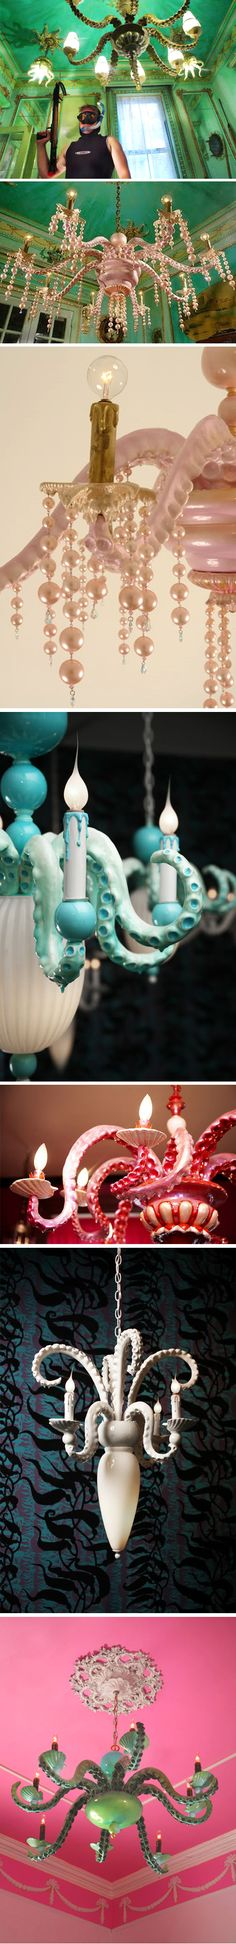 octopus chandeliers. so necessary